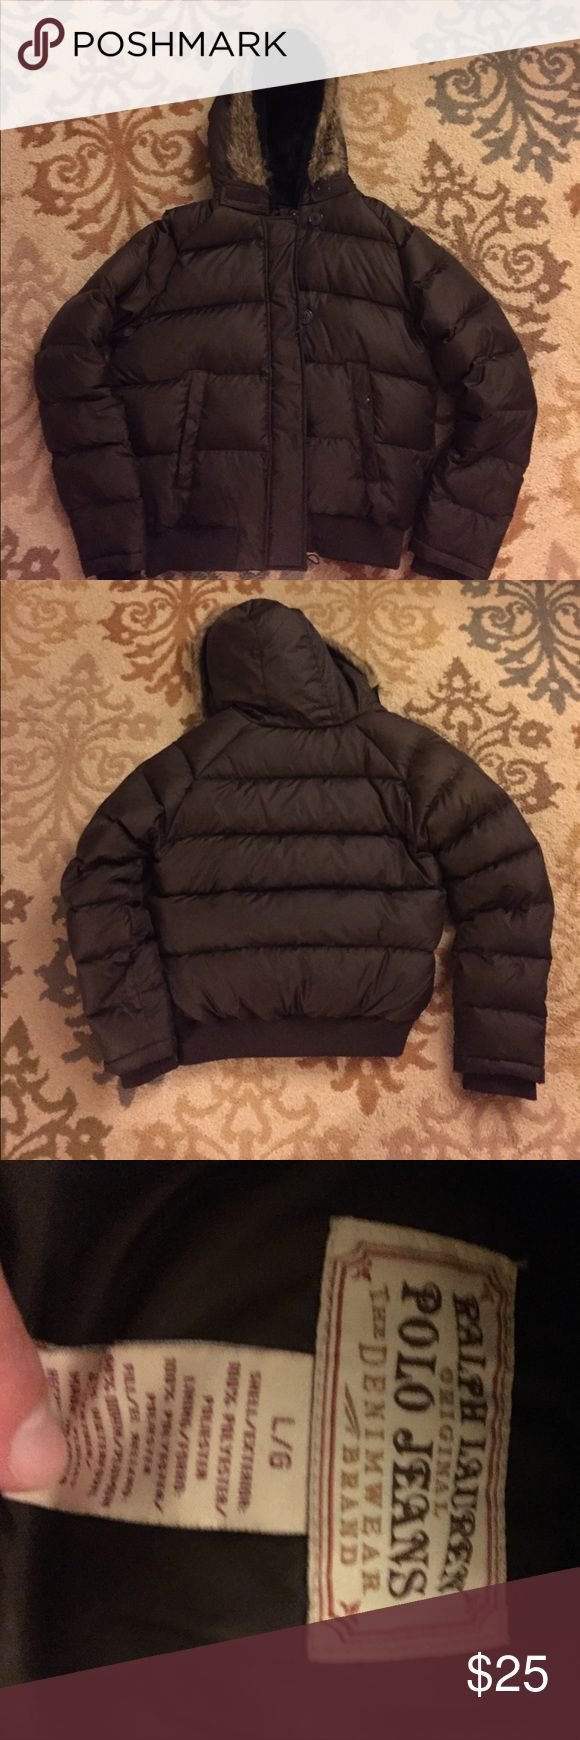 Ralph Lauren down puffer jacket with faux fur hood Ralph Lauren down puffer jacket with faux fur hood. Size Large. Wore 5 times at most. Polo by Ralph Lauren Jackets & Coats Puffers